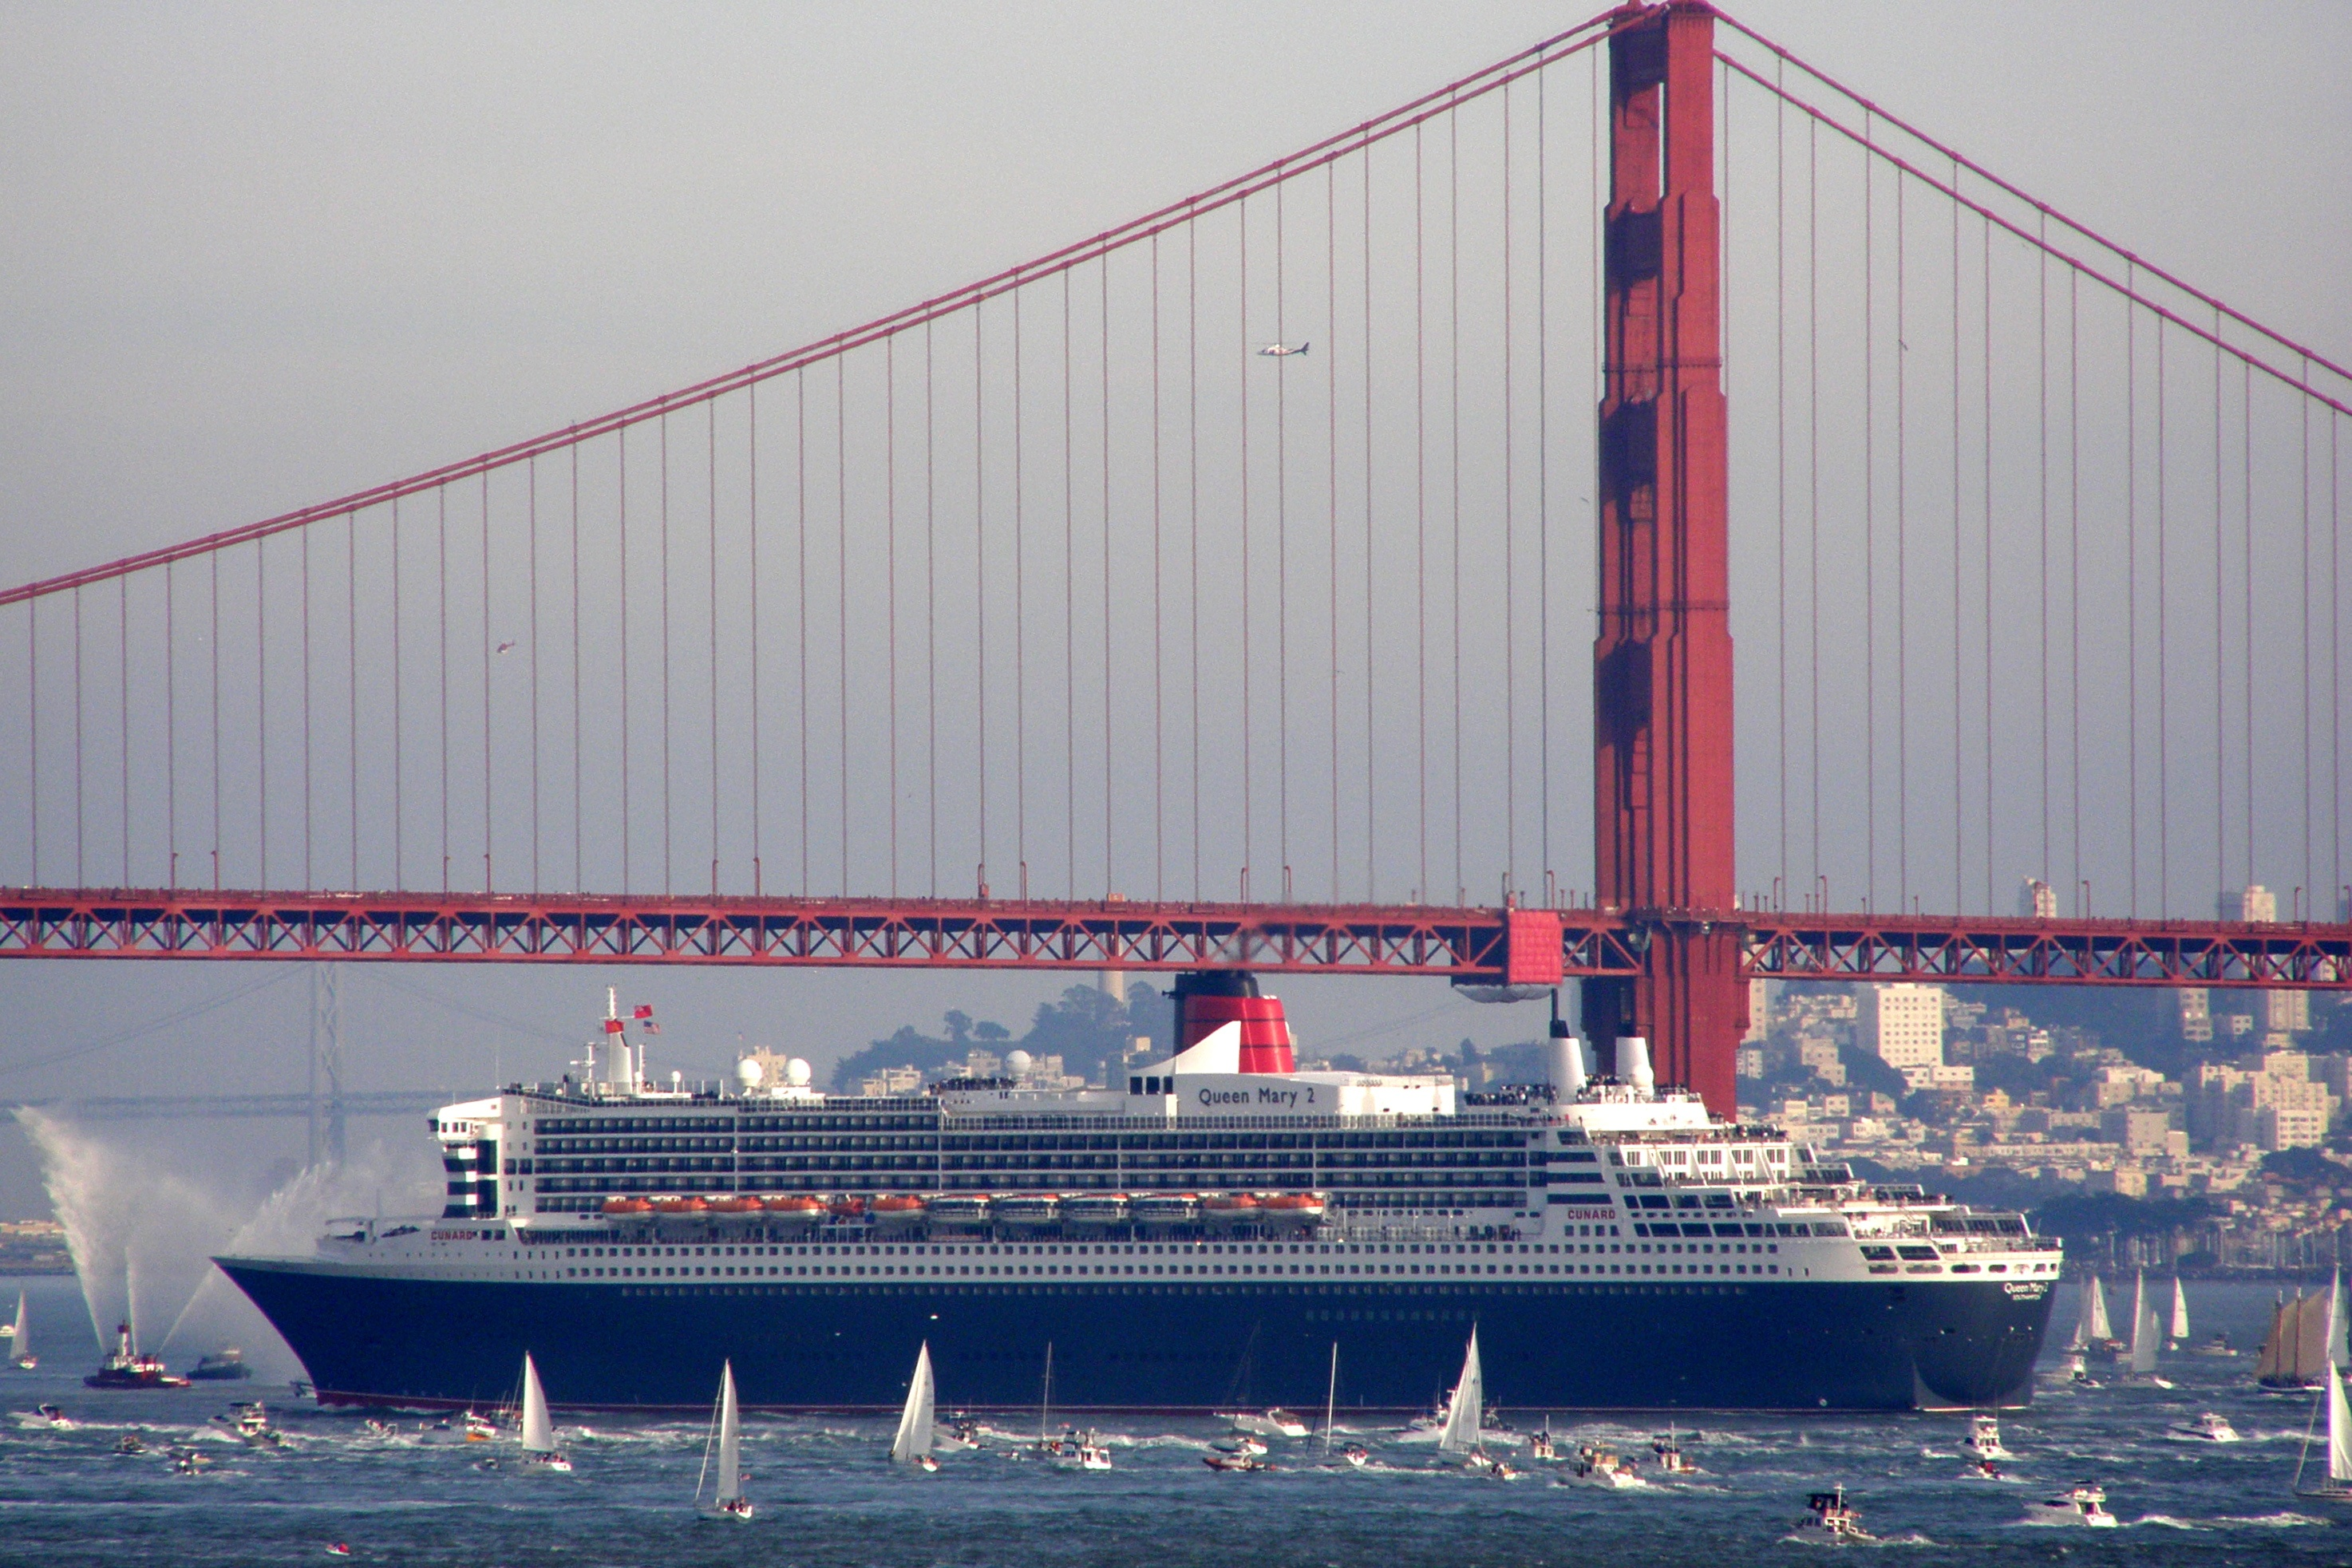 queen mary visits san francisco author lucke char charlie